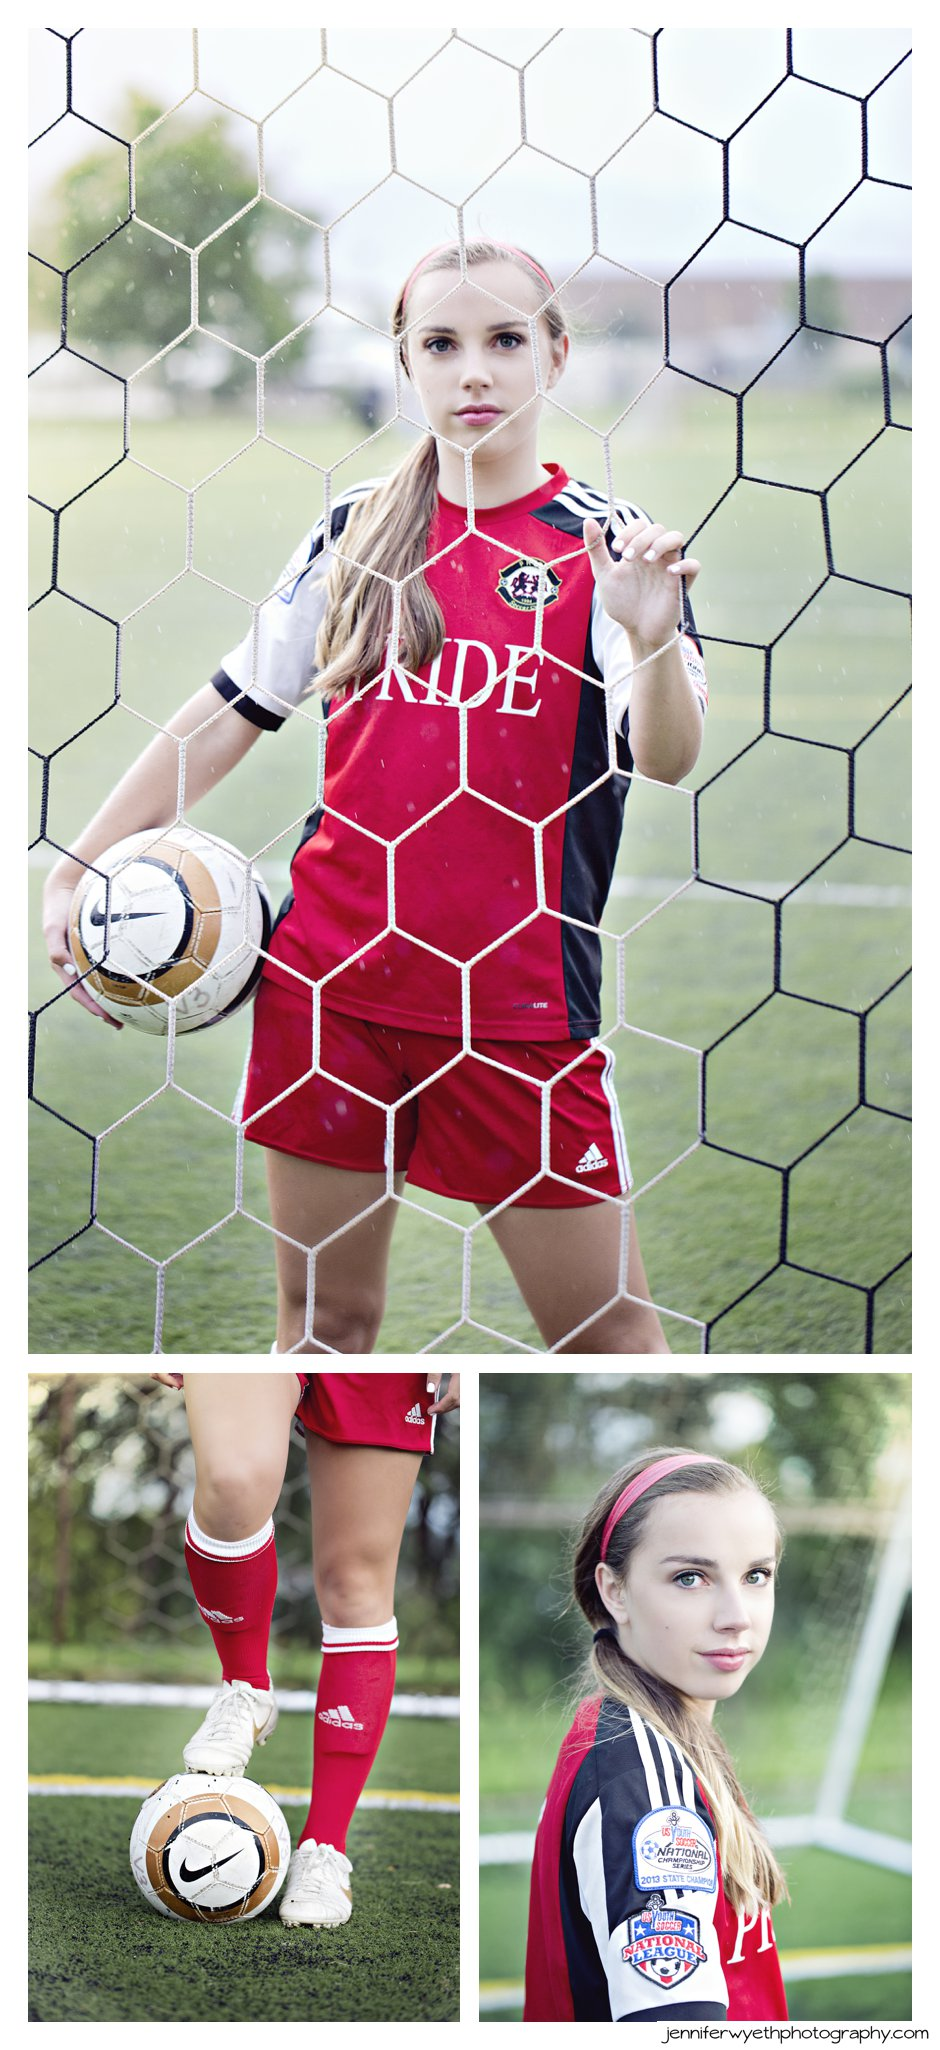 Pride soccer player looks tough as she poses in her uniform and with her soccer ball by the goal